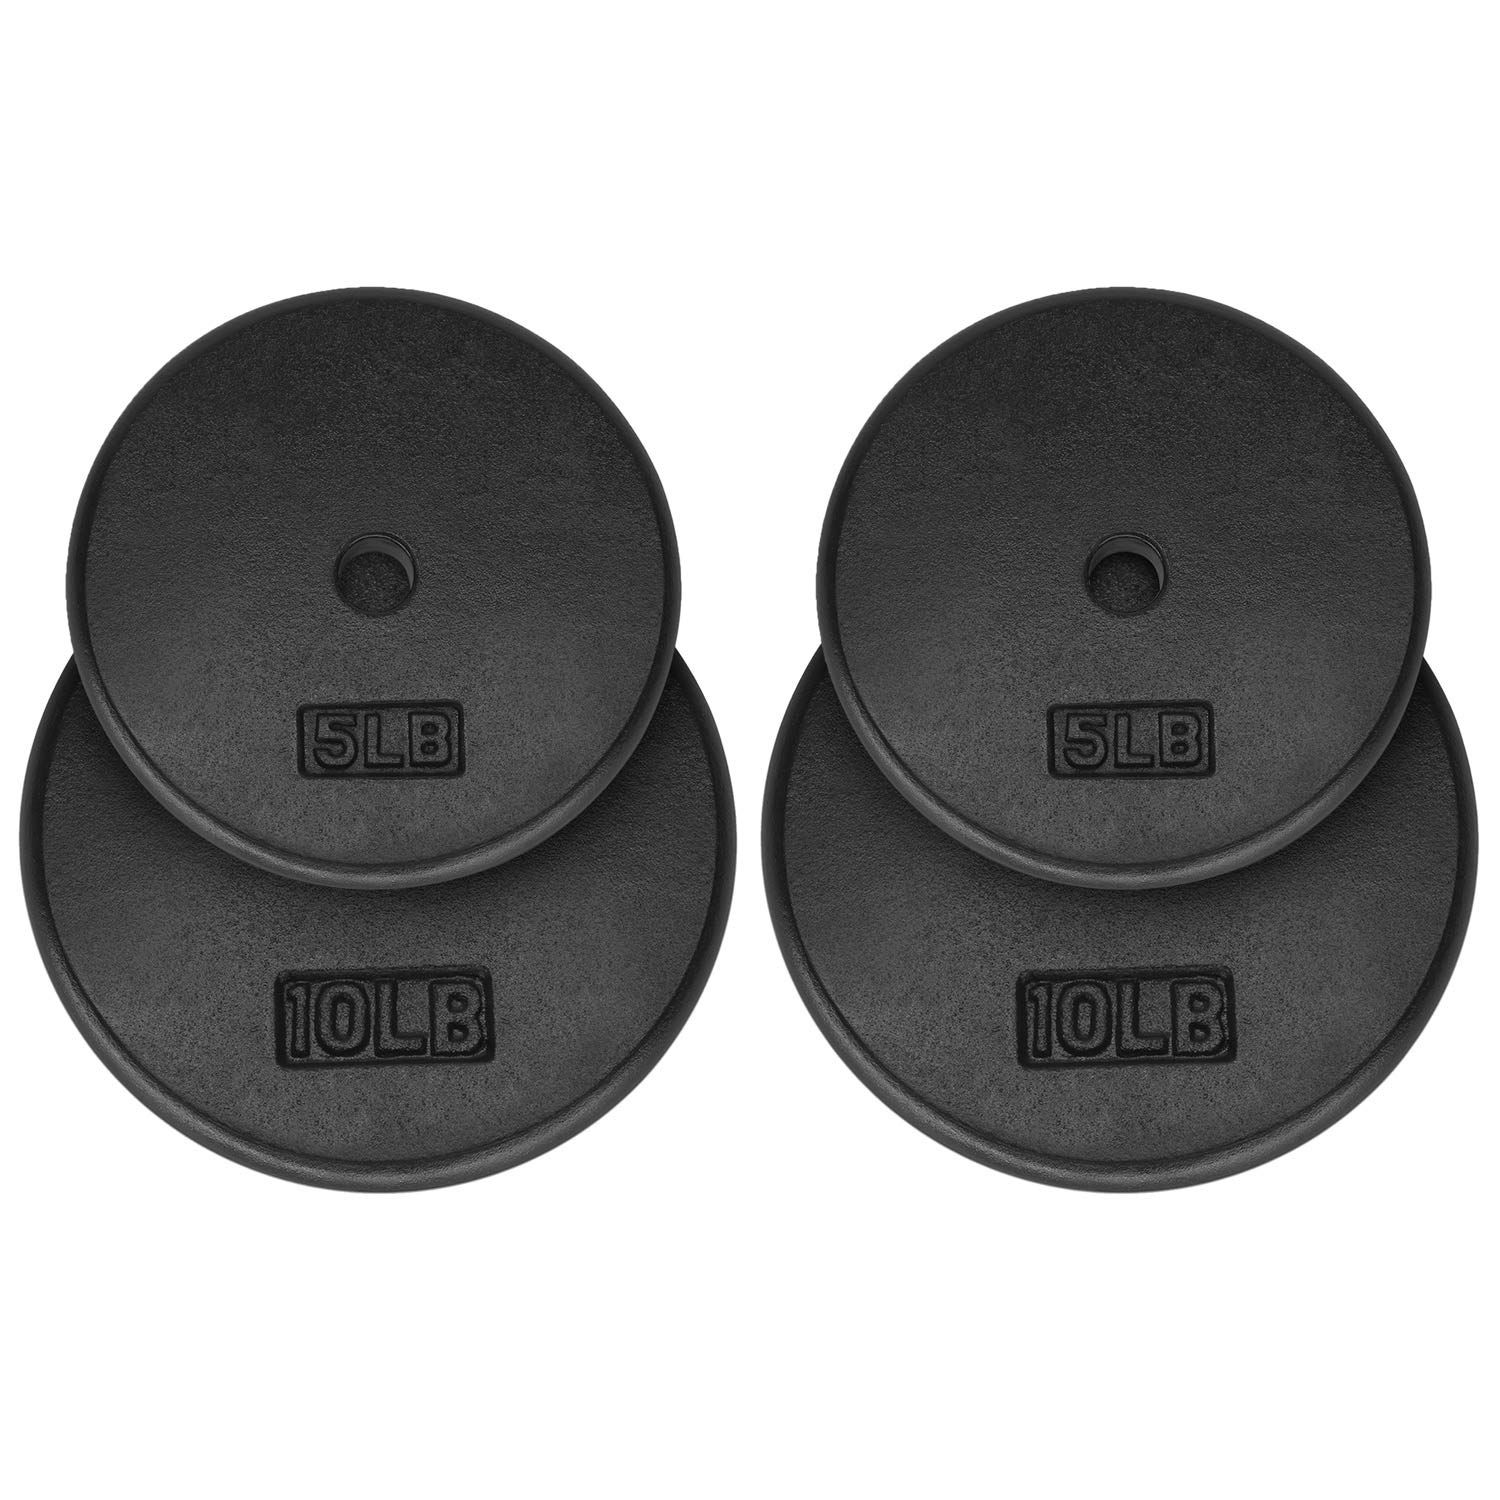 Yes4All 1-inch Cast Iron Weight Plates for Dumbbells – Standard Weight Plates (Combo 5lb x 2pcs + 10lb x 2pcs)